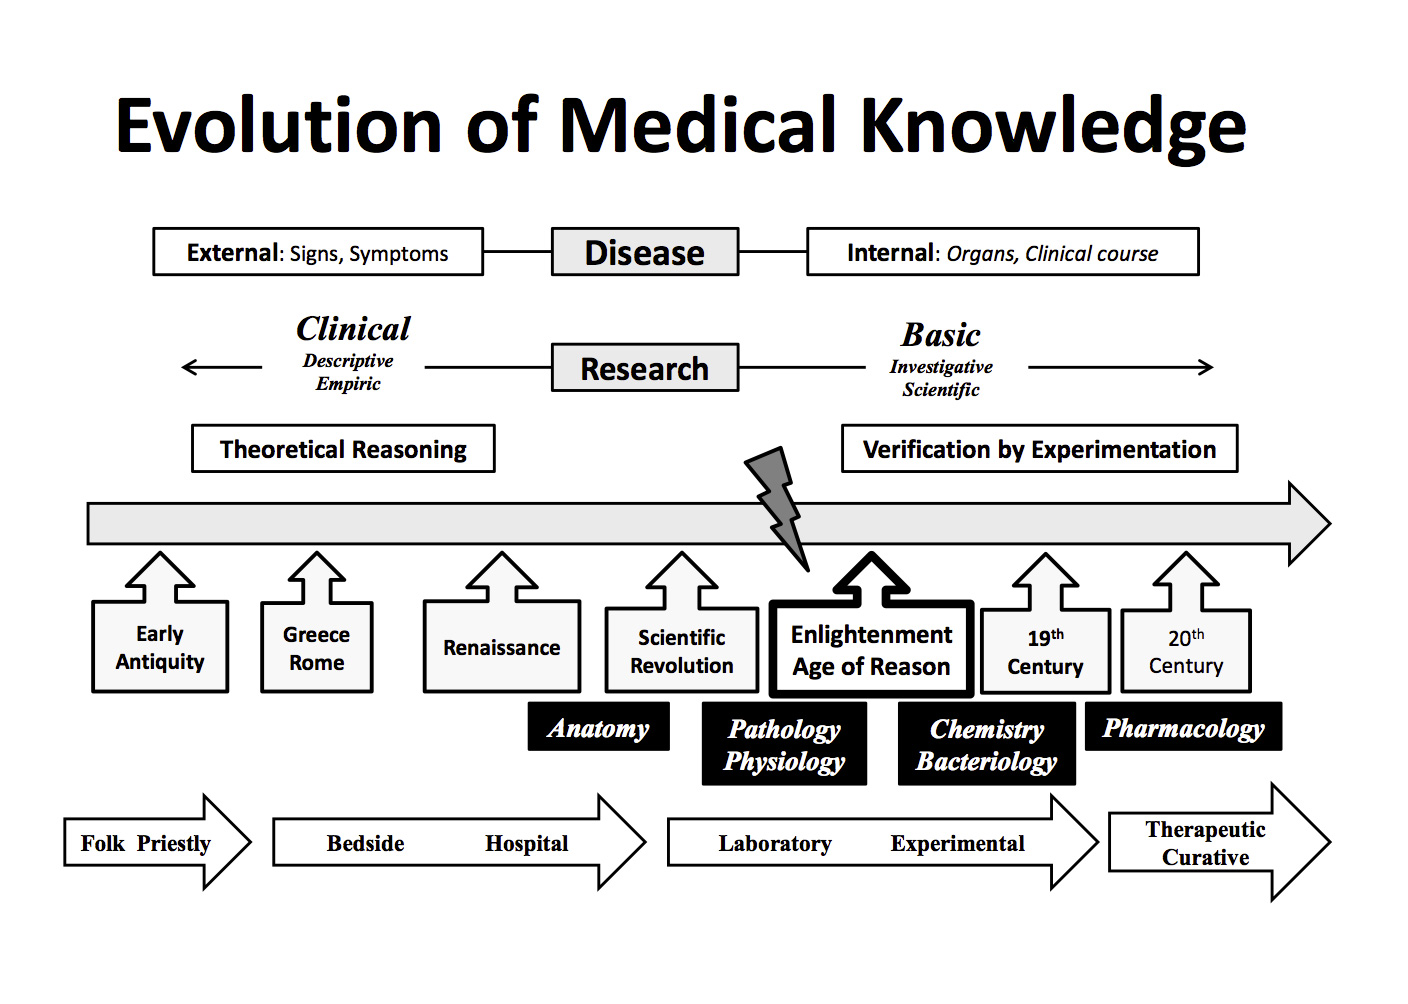 Evolution of Clinical Research: A History Before and Beyond James Lind